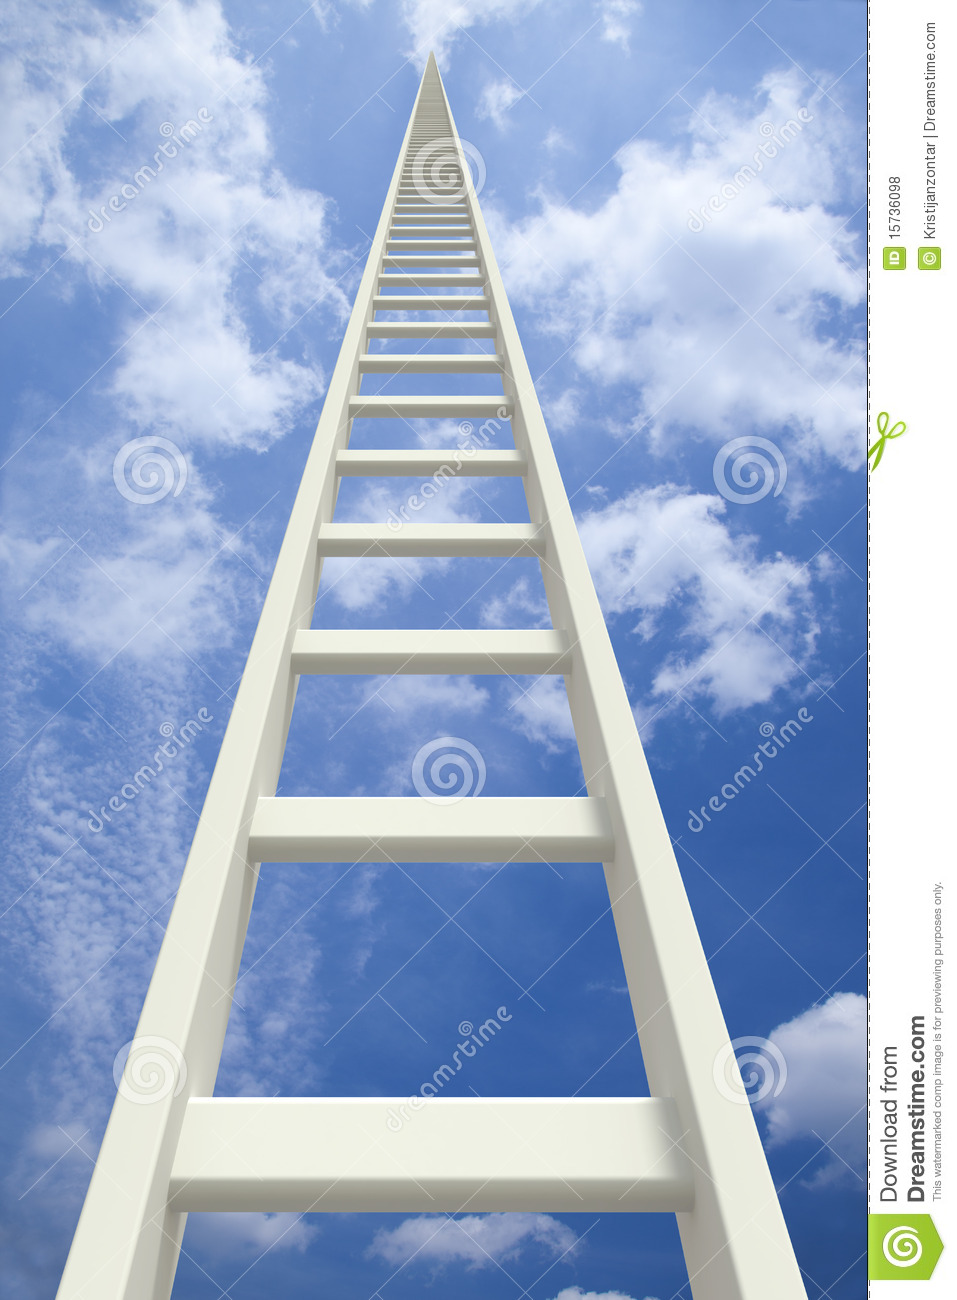 White Endless Ladder Going Up Royalty Free Stock Photos - Image ...: dreamstime.com/royalty-free-stock-photos-white-endless-ladder-going...